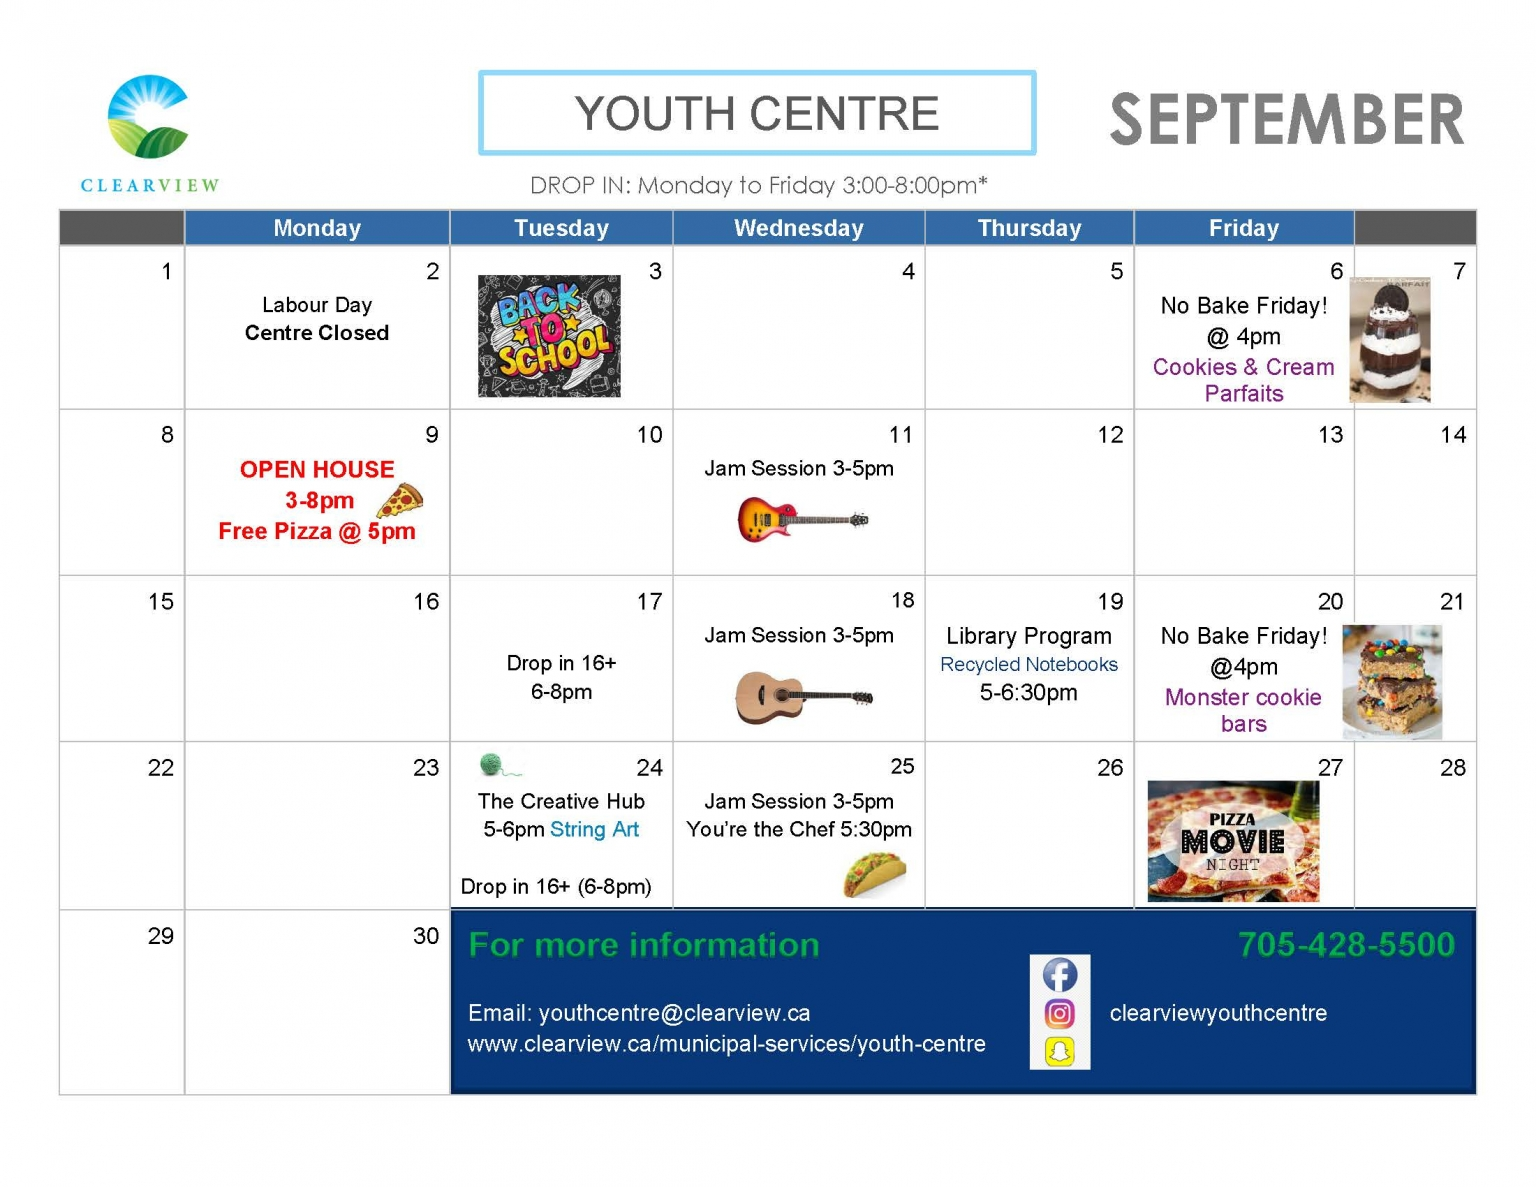 Clearview Youth Centre - June 2019 Events Calendar